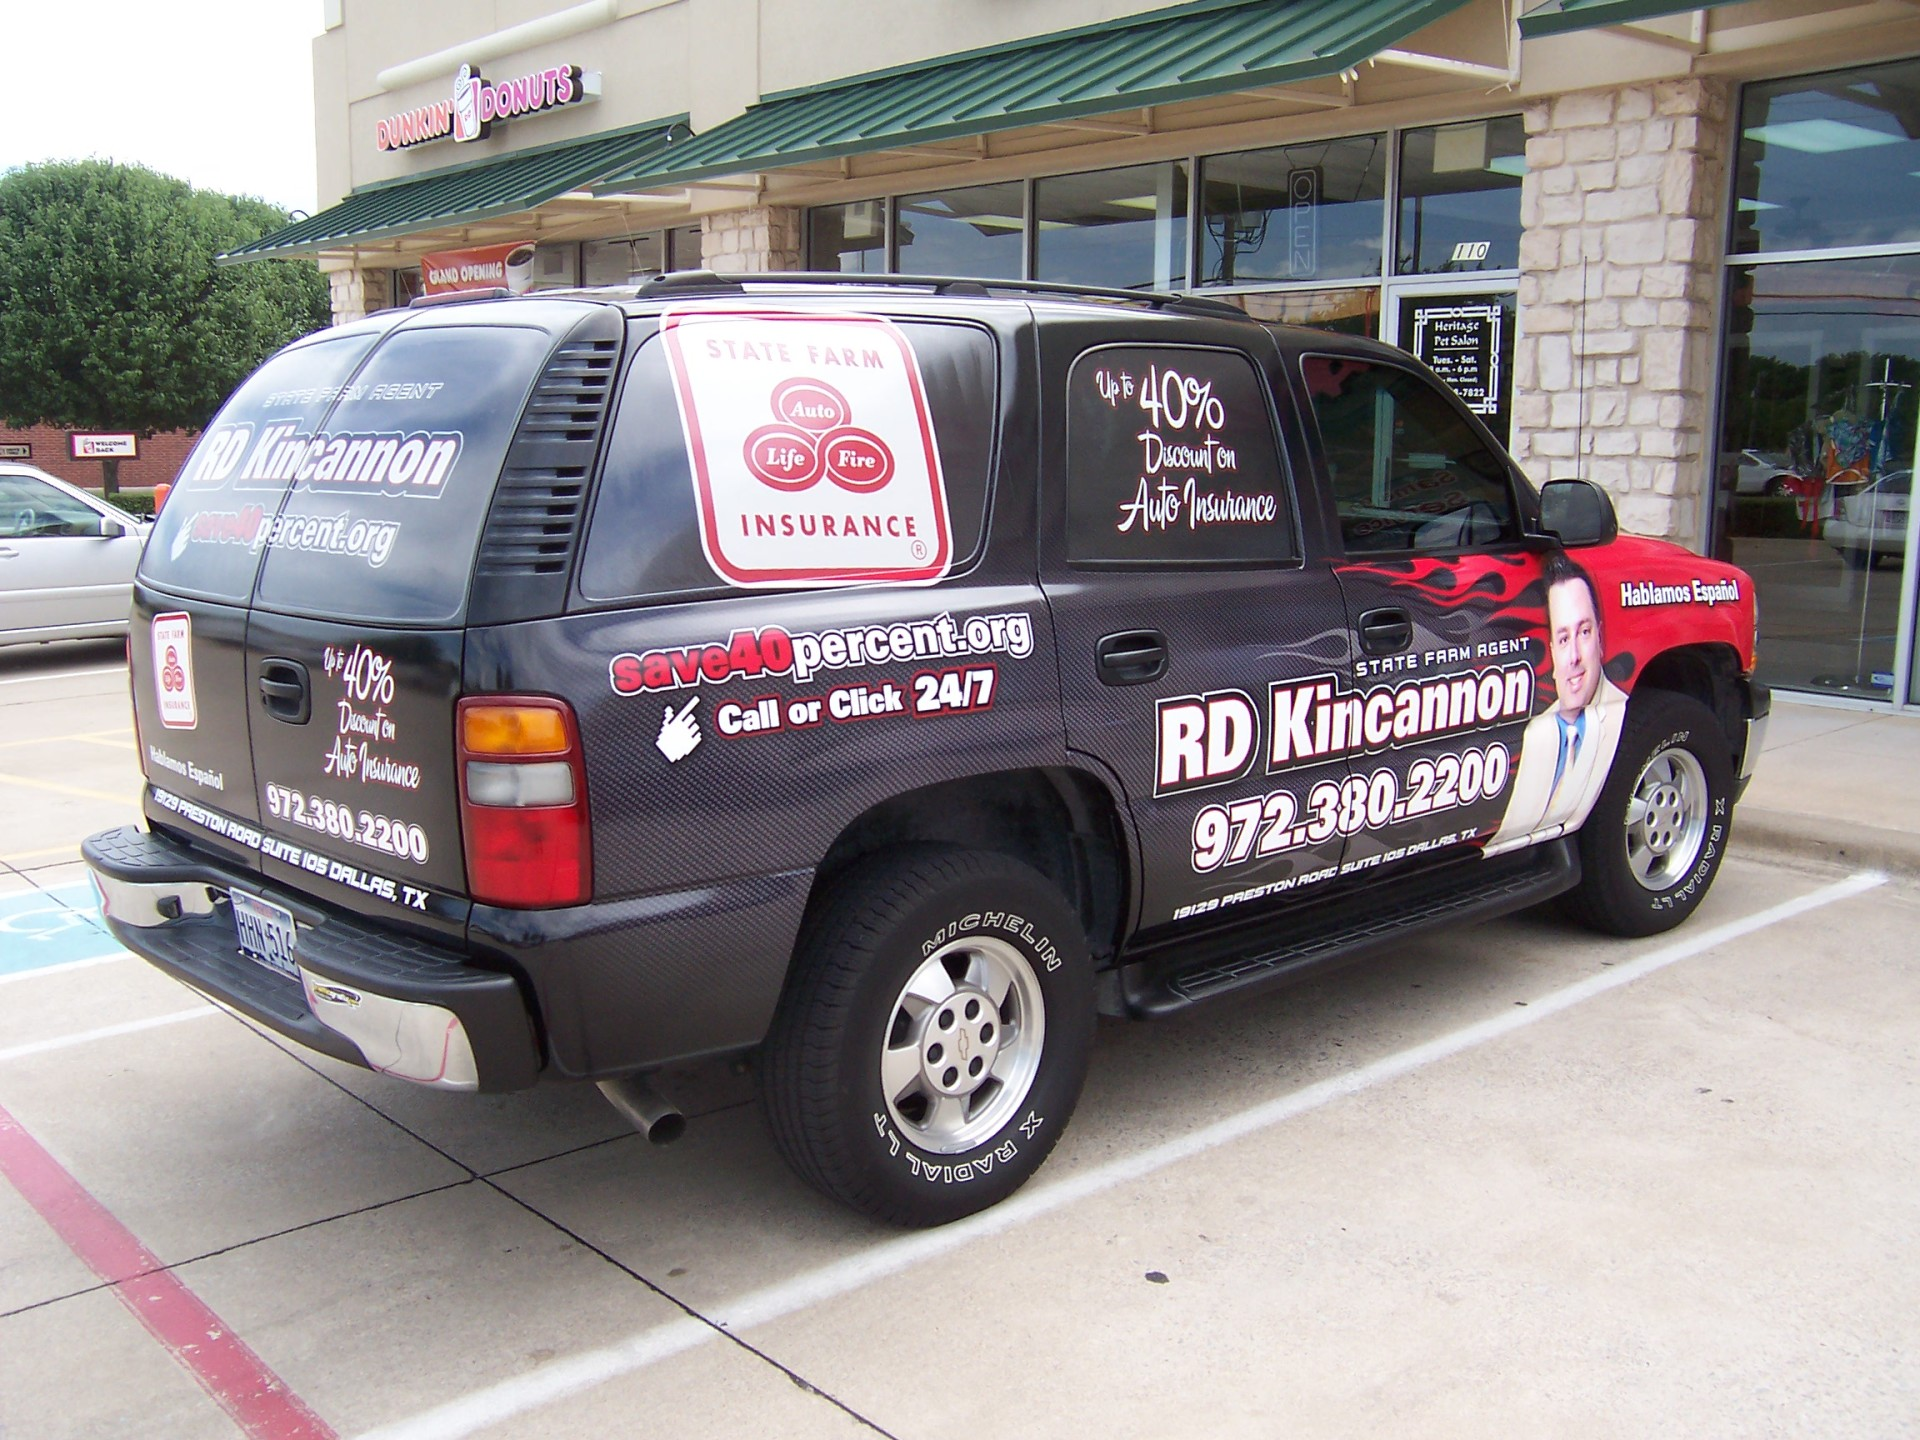 State Farm Agent RD Kincannon , State Farm Vehicle Wraps, vehicle wraps dallas tx